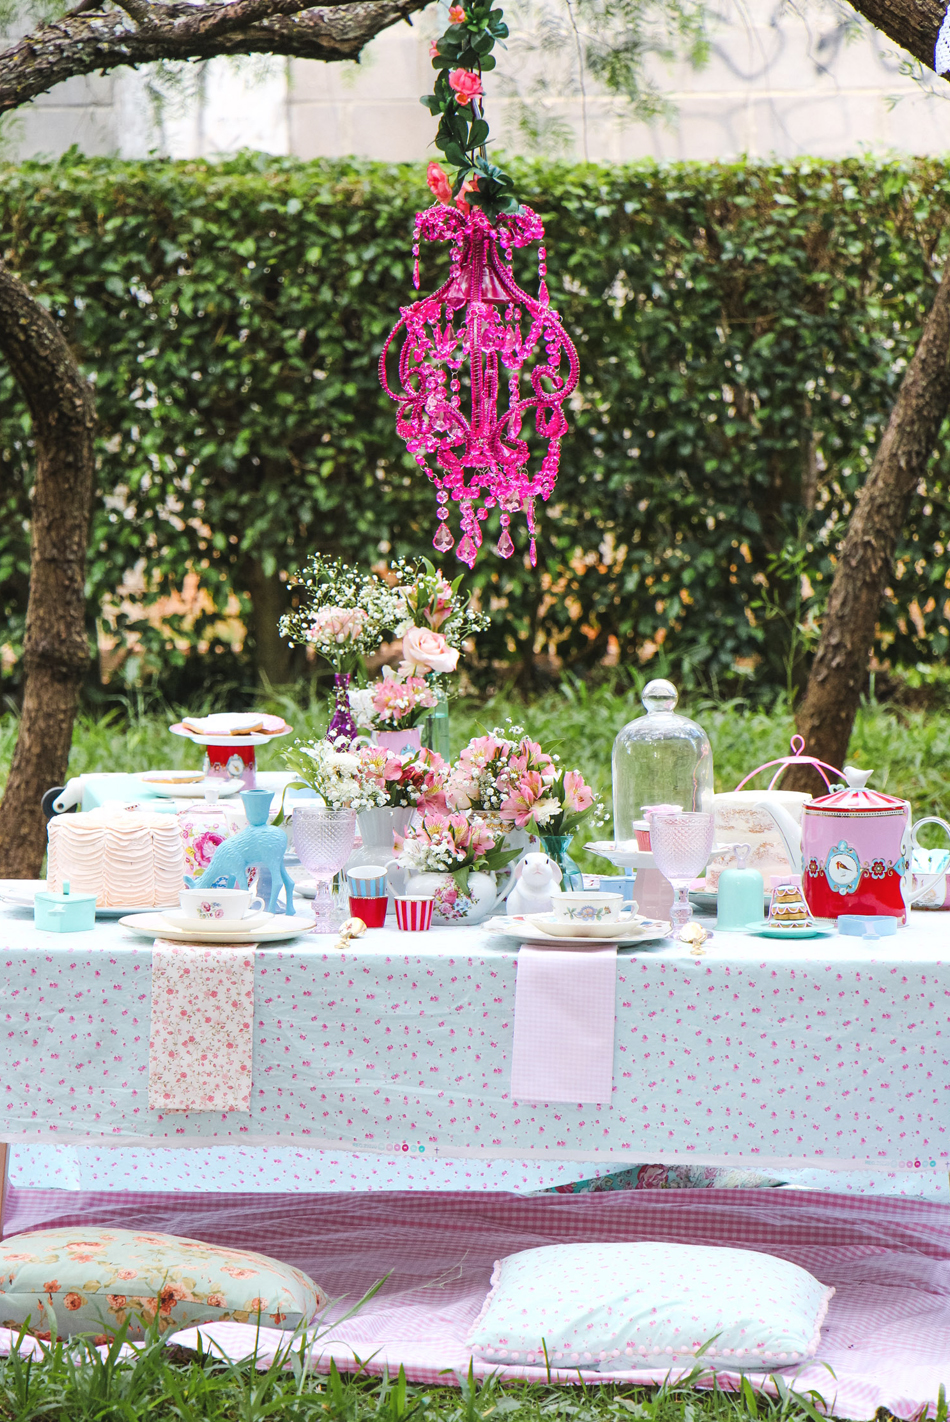 blog do math cha da tarde romantico no jardim vintage romantic garden tea party